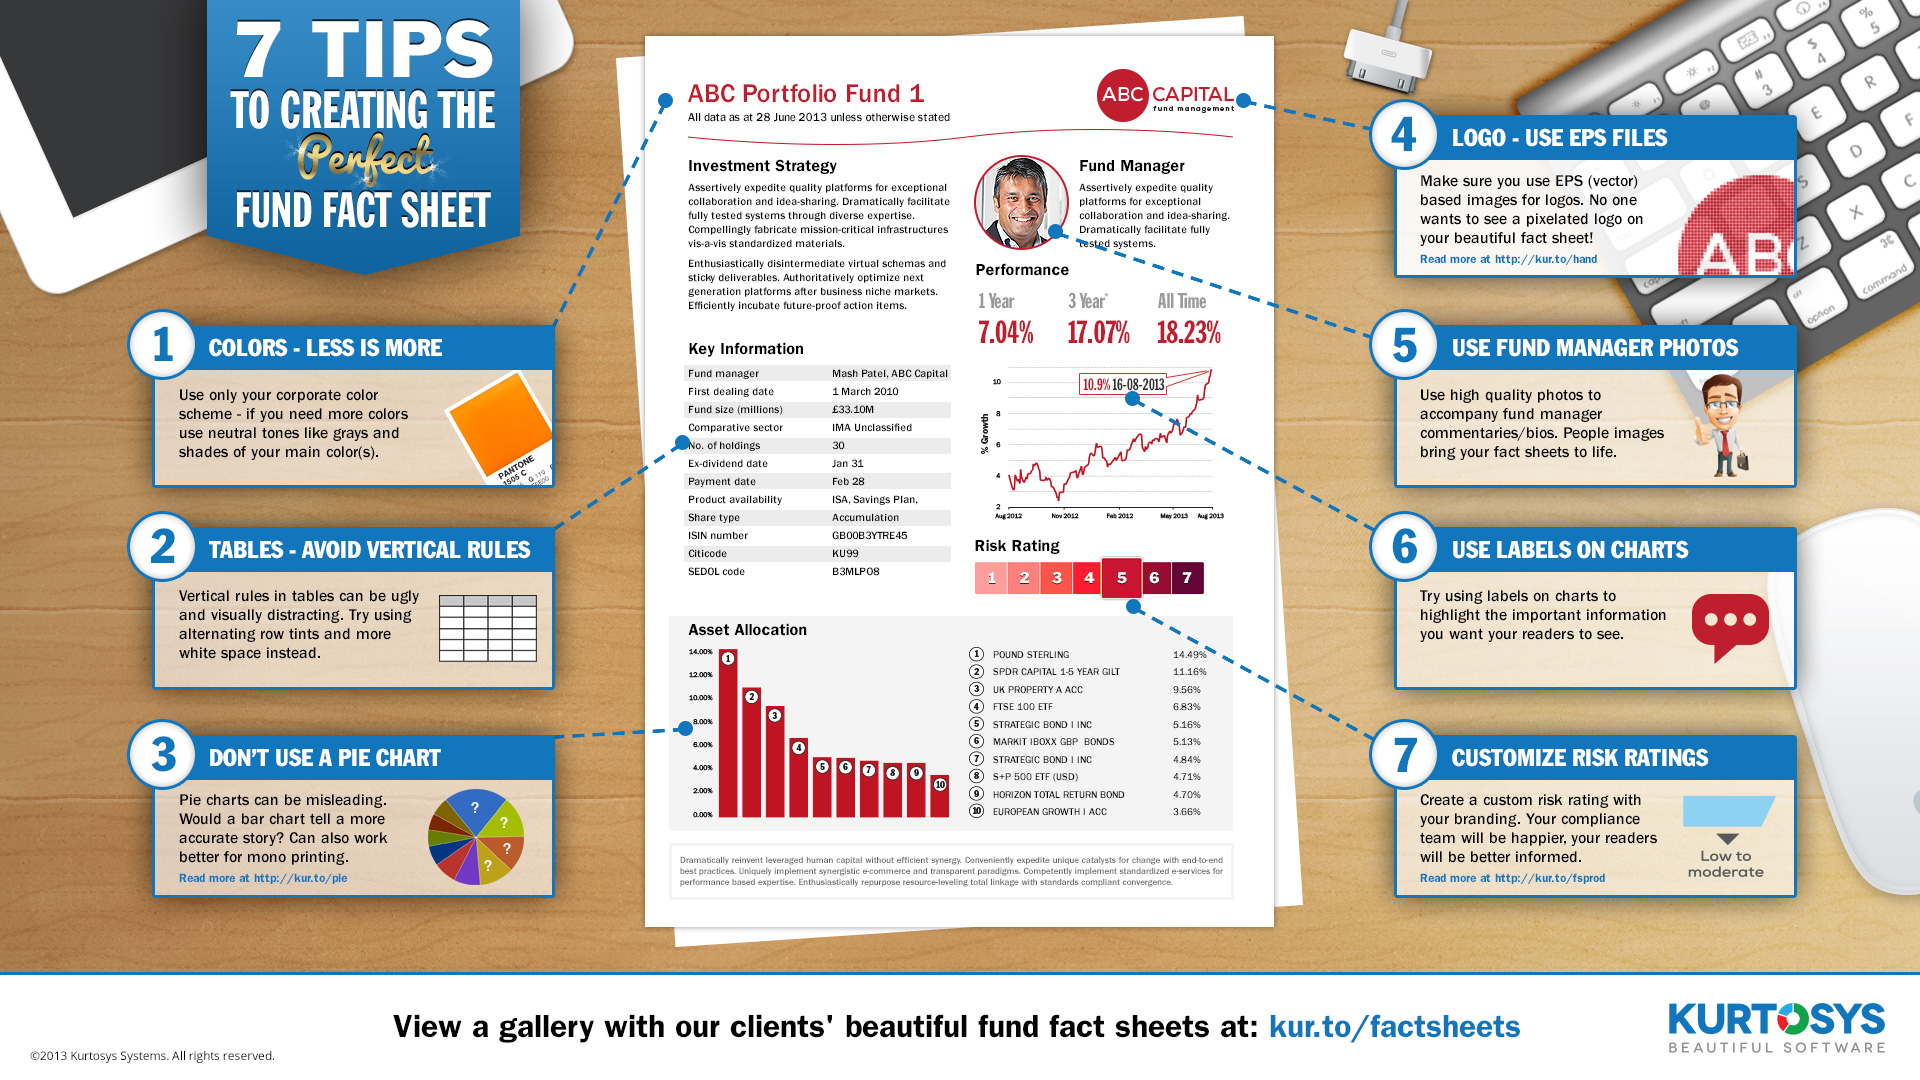 7 Tips to Creating the Perfect Fund Fact Sheet [INFOGRAPHIC].